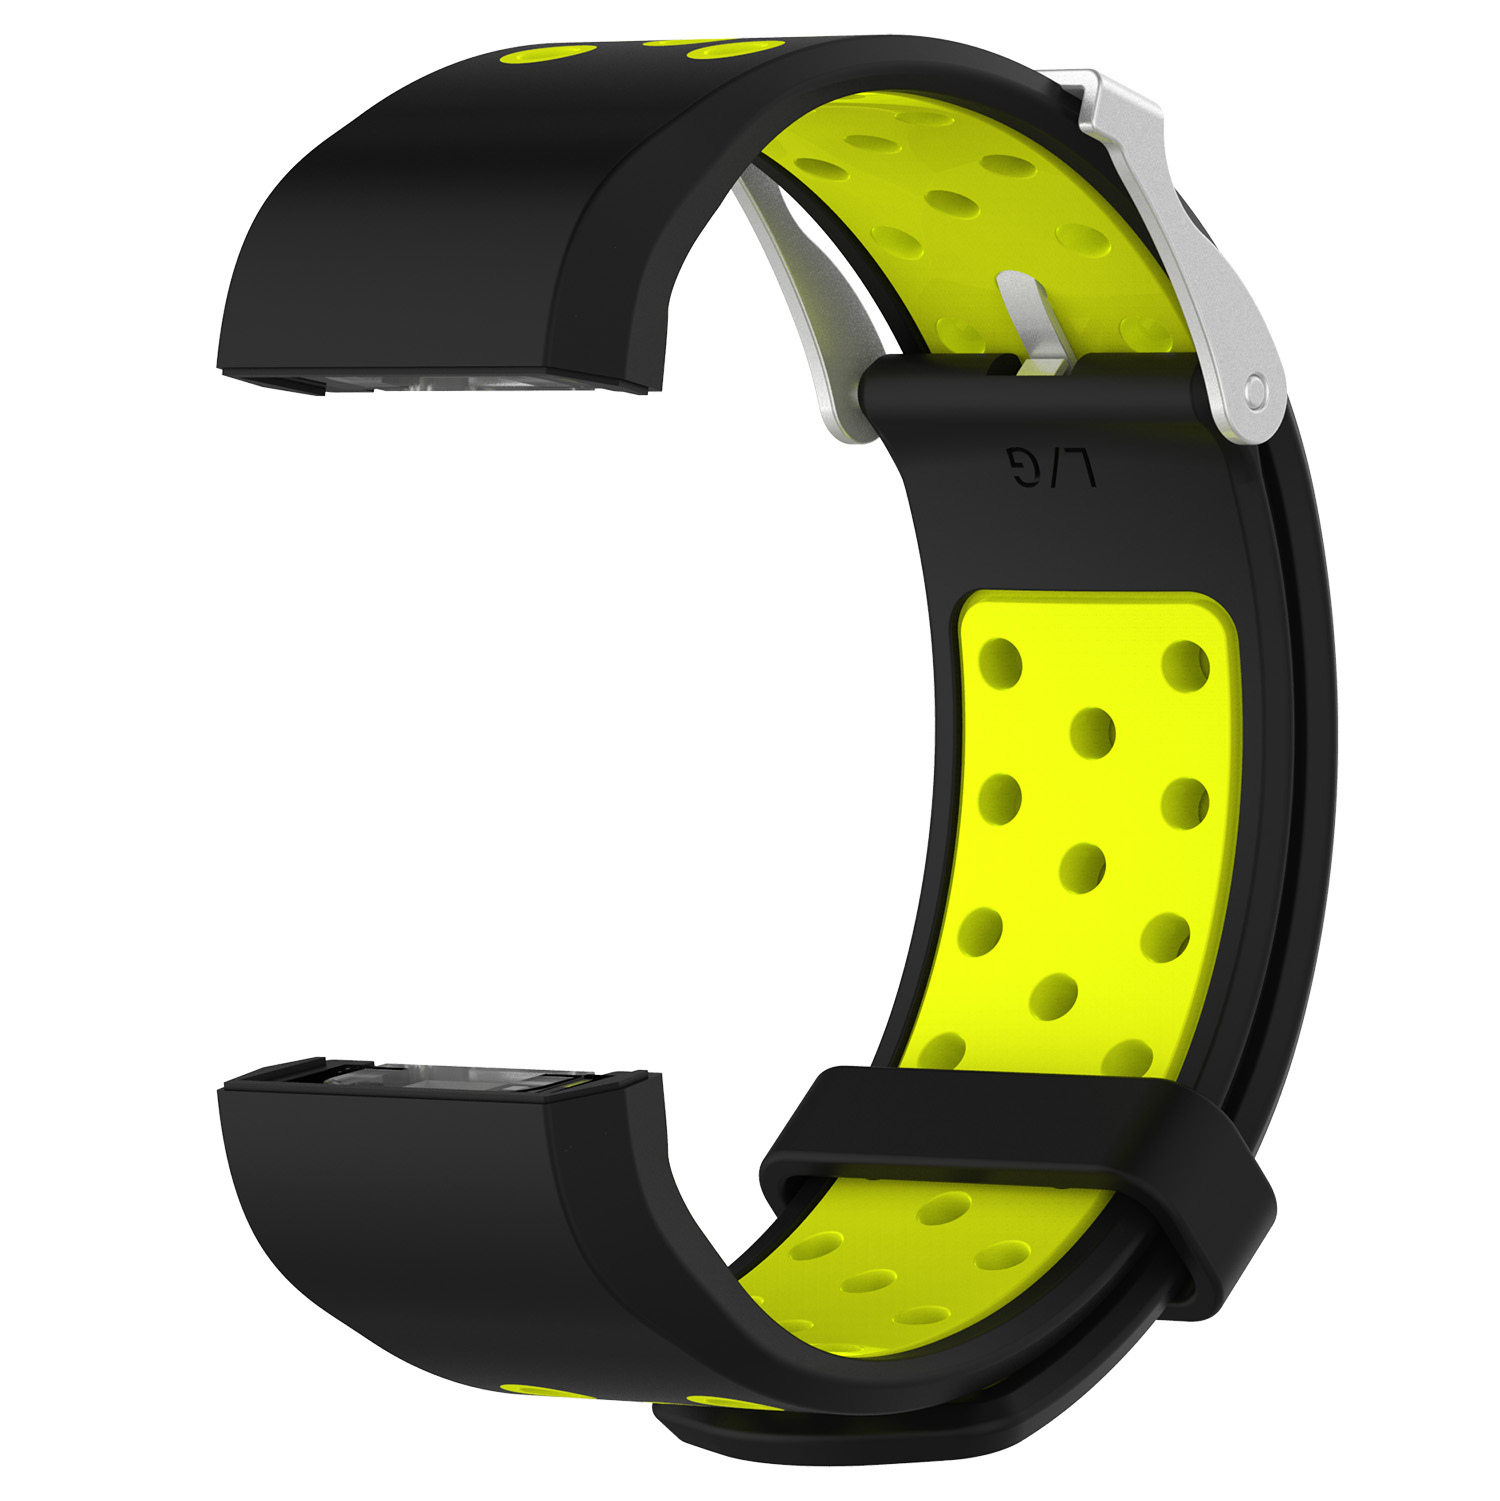 Replacement-Silicone-Wristband-Watch-Strap-Bands-Bracelet-For-Fitbit-Charge-2 thumbnail 80